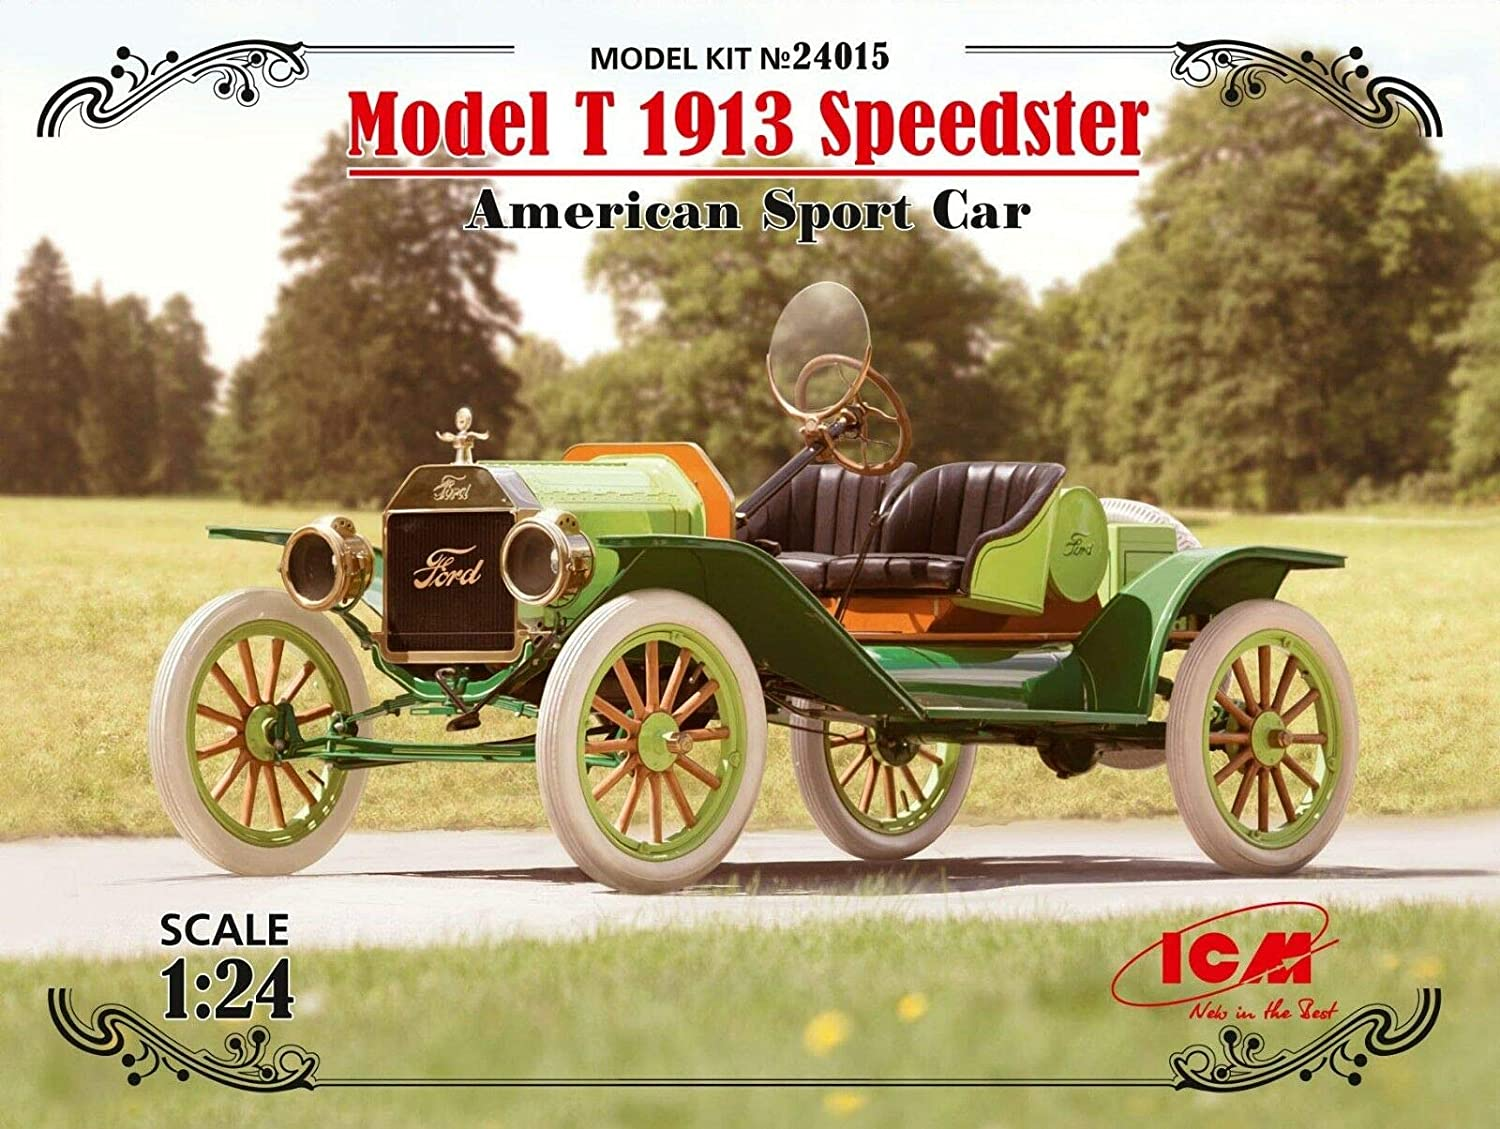 Icm 1 24 Scale Model T 1913 Speedster American Sport Car Plastic Car Model Building Kit 24015 Toys Games